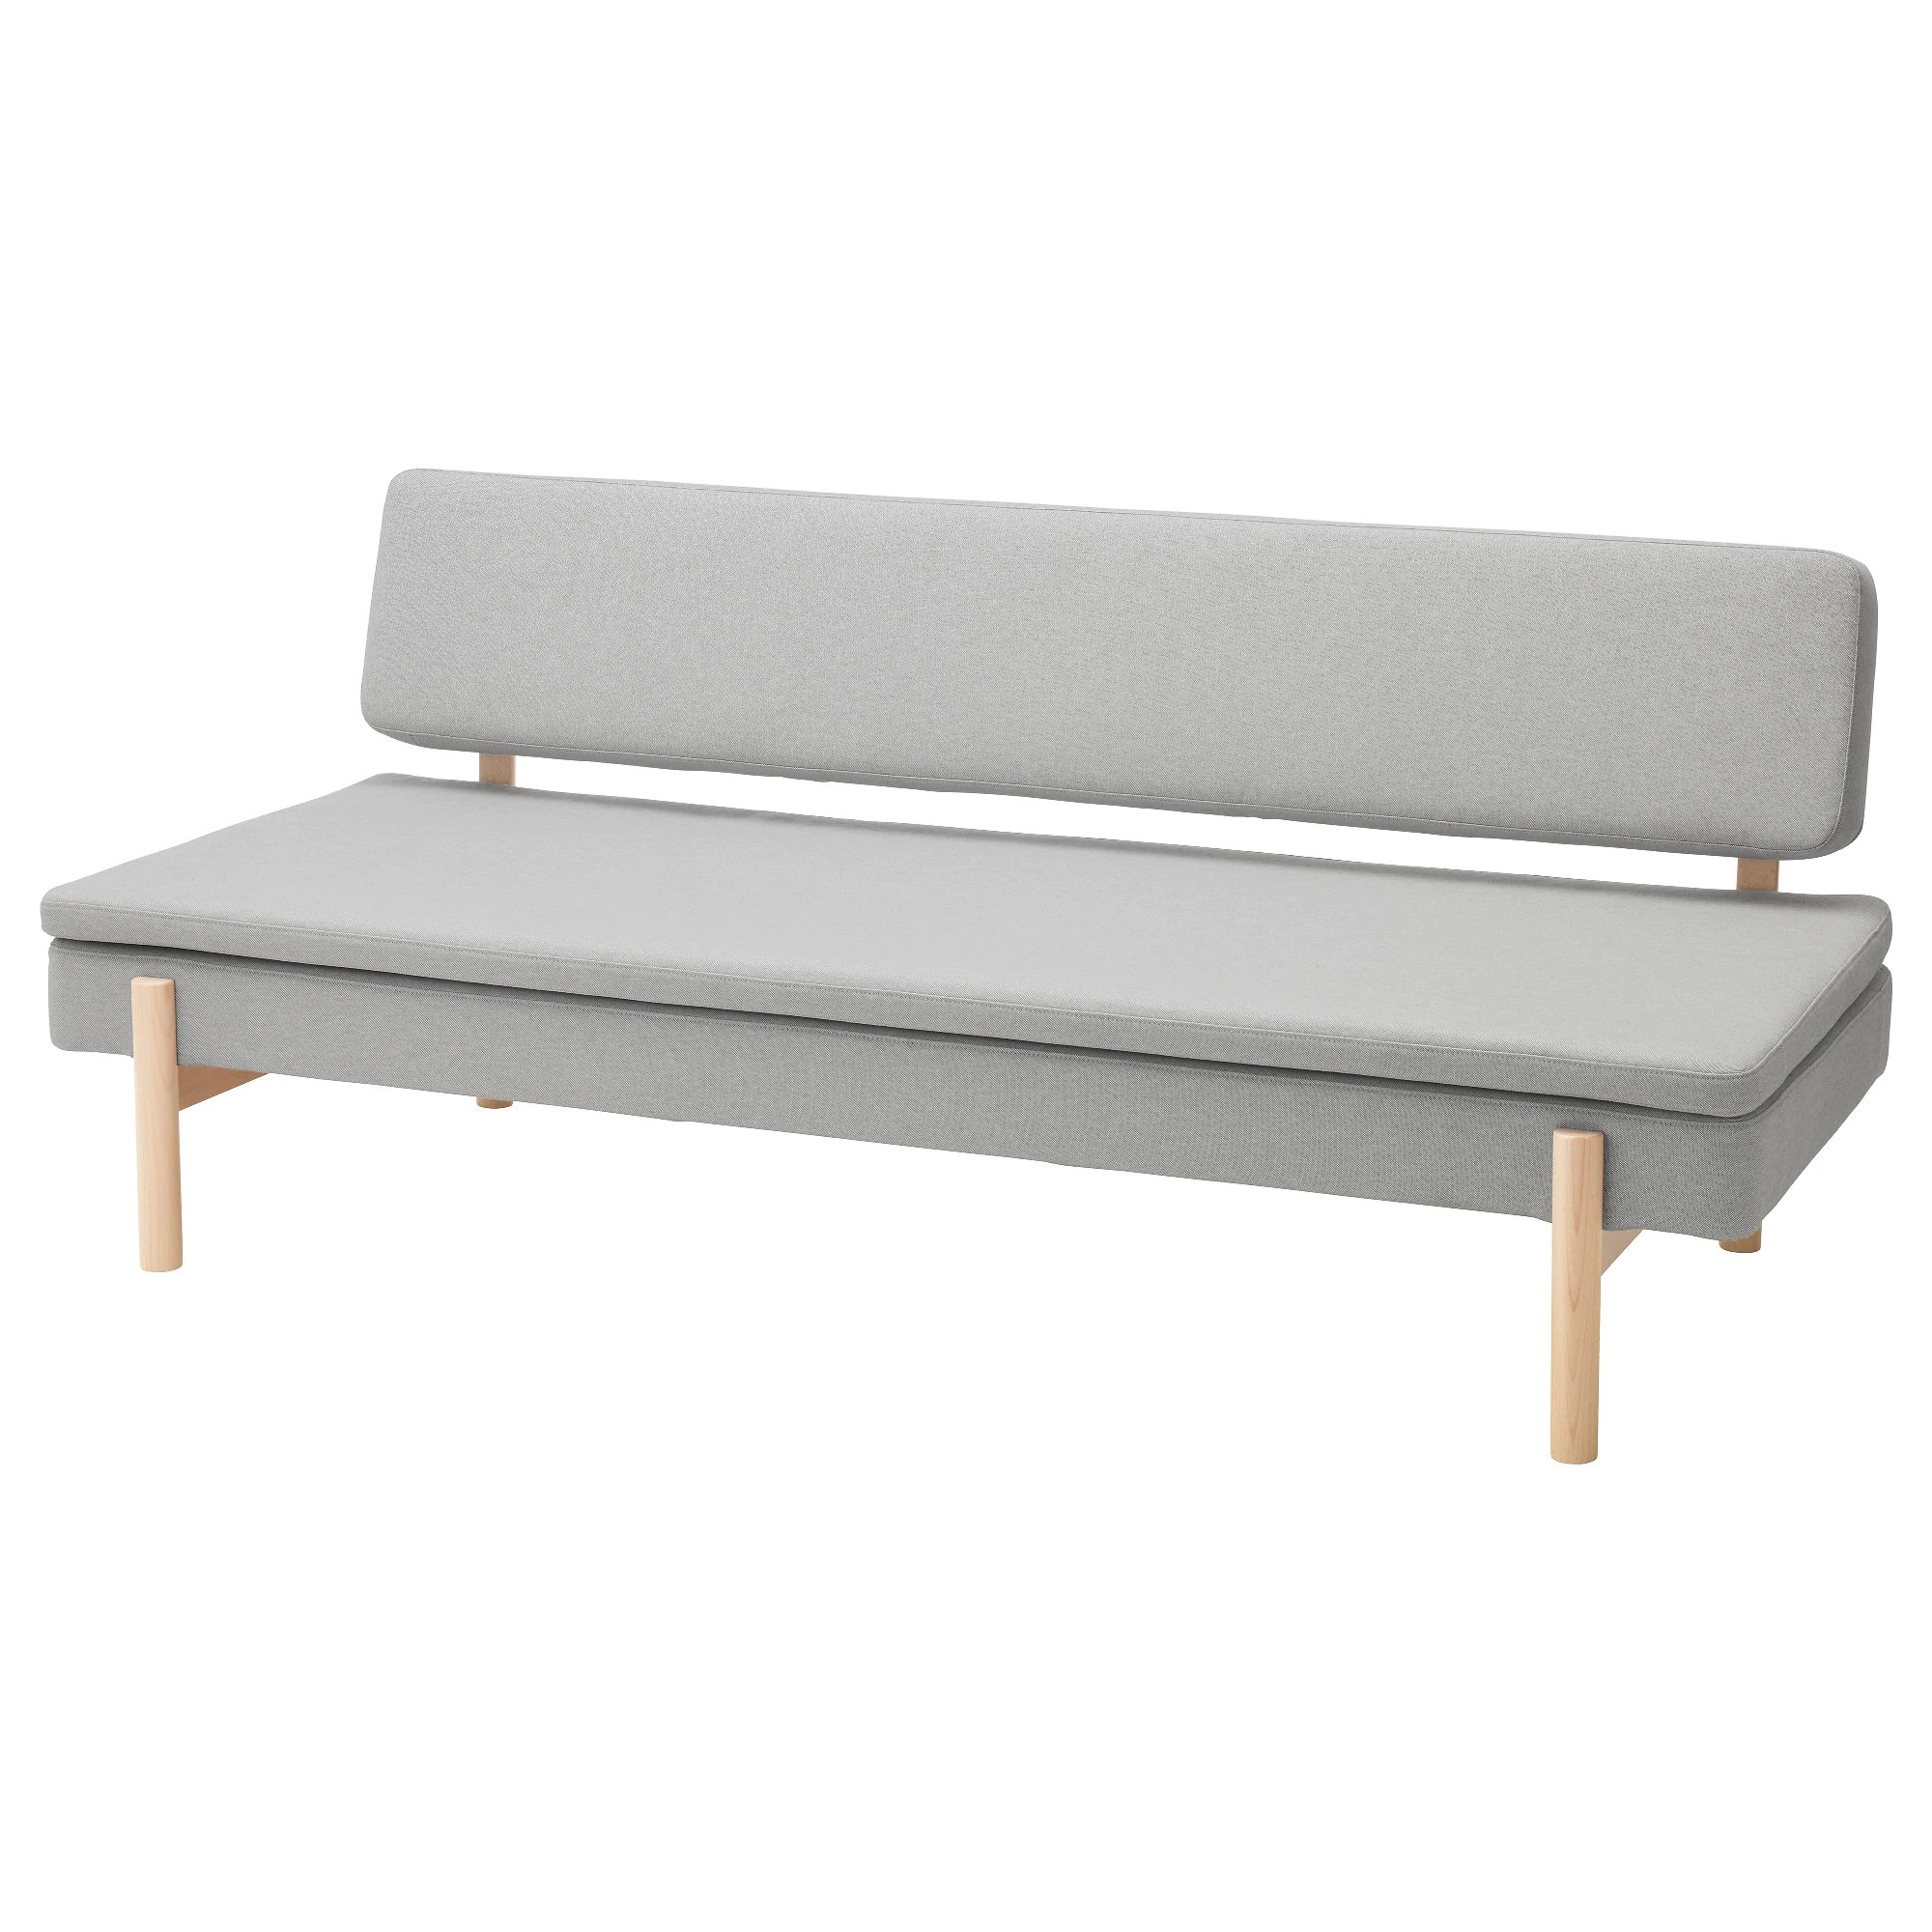 Bettsofa Florida Ypperlig 3 Seat Sleeper Sofa Orrsta Light Gray